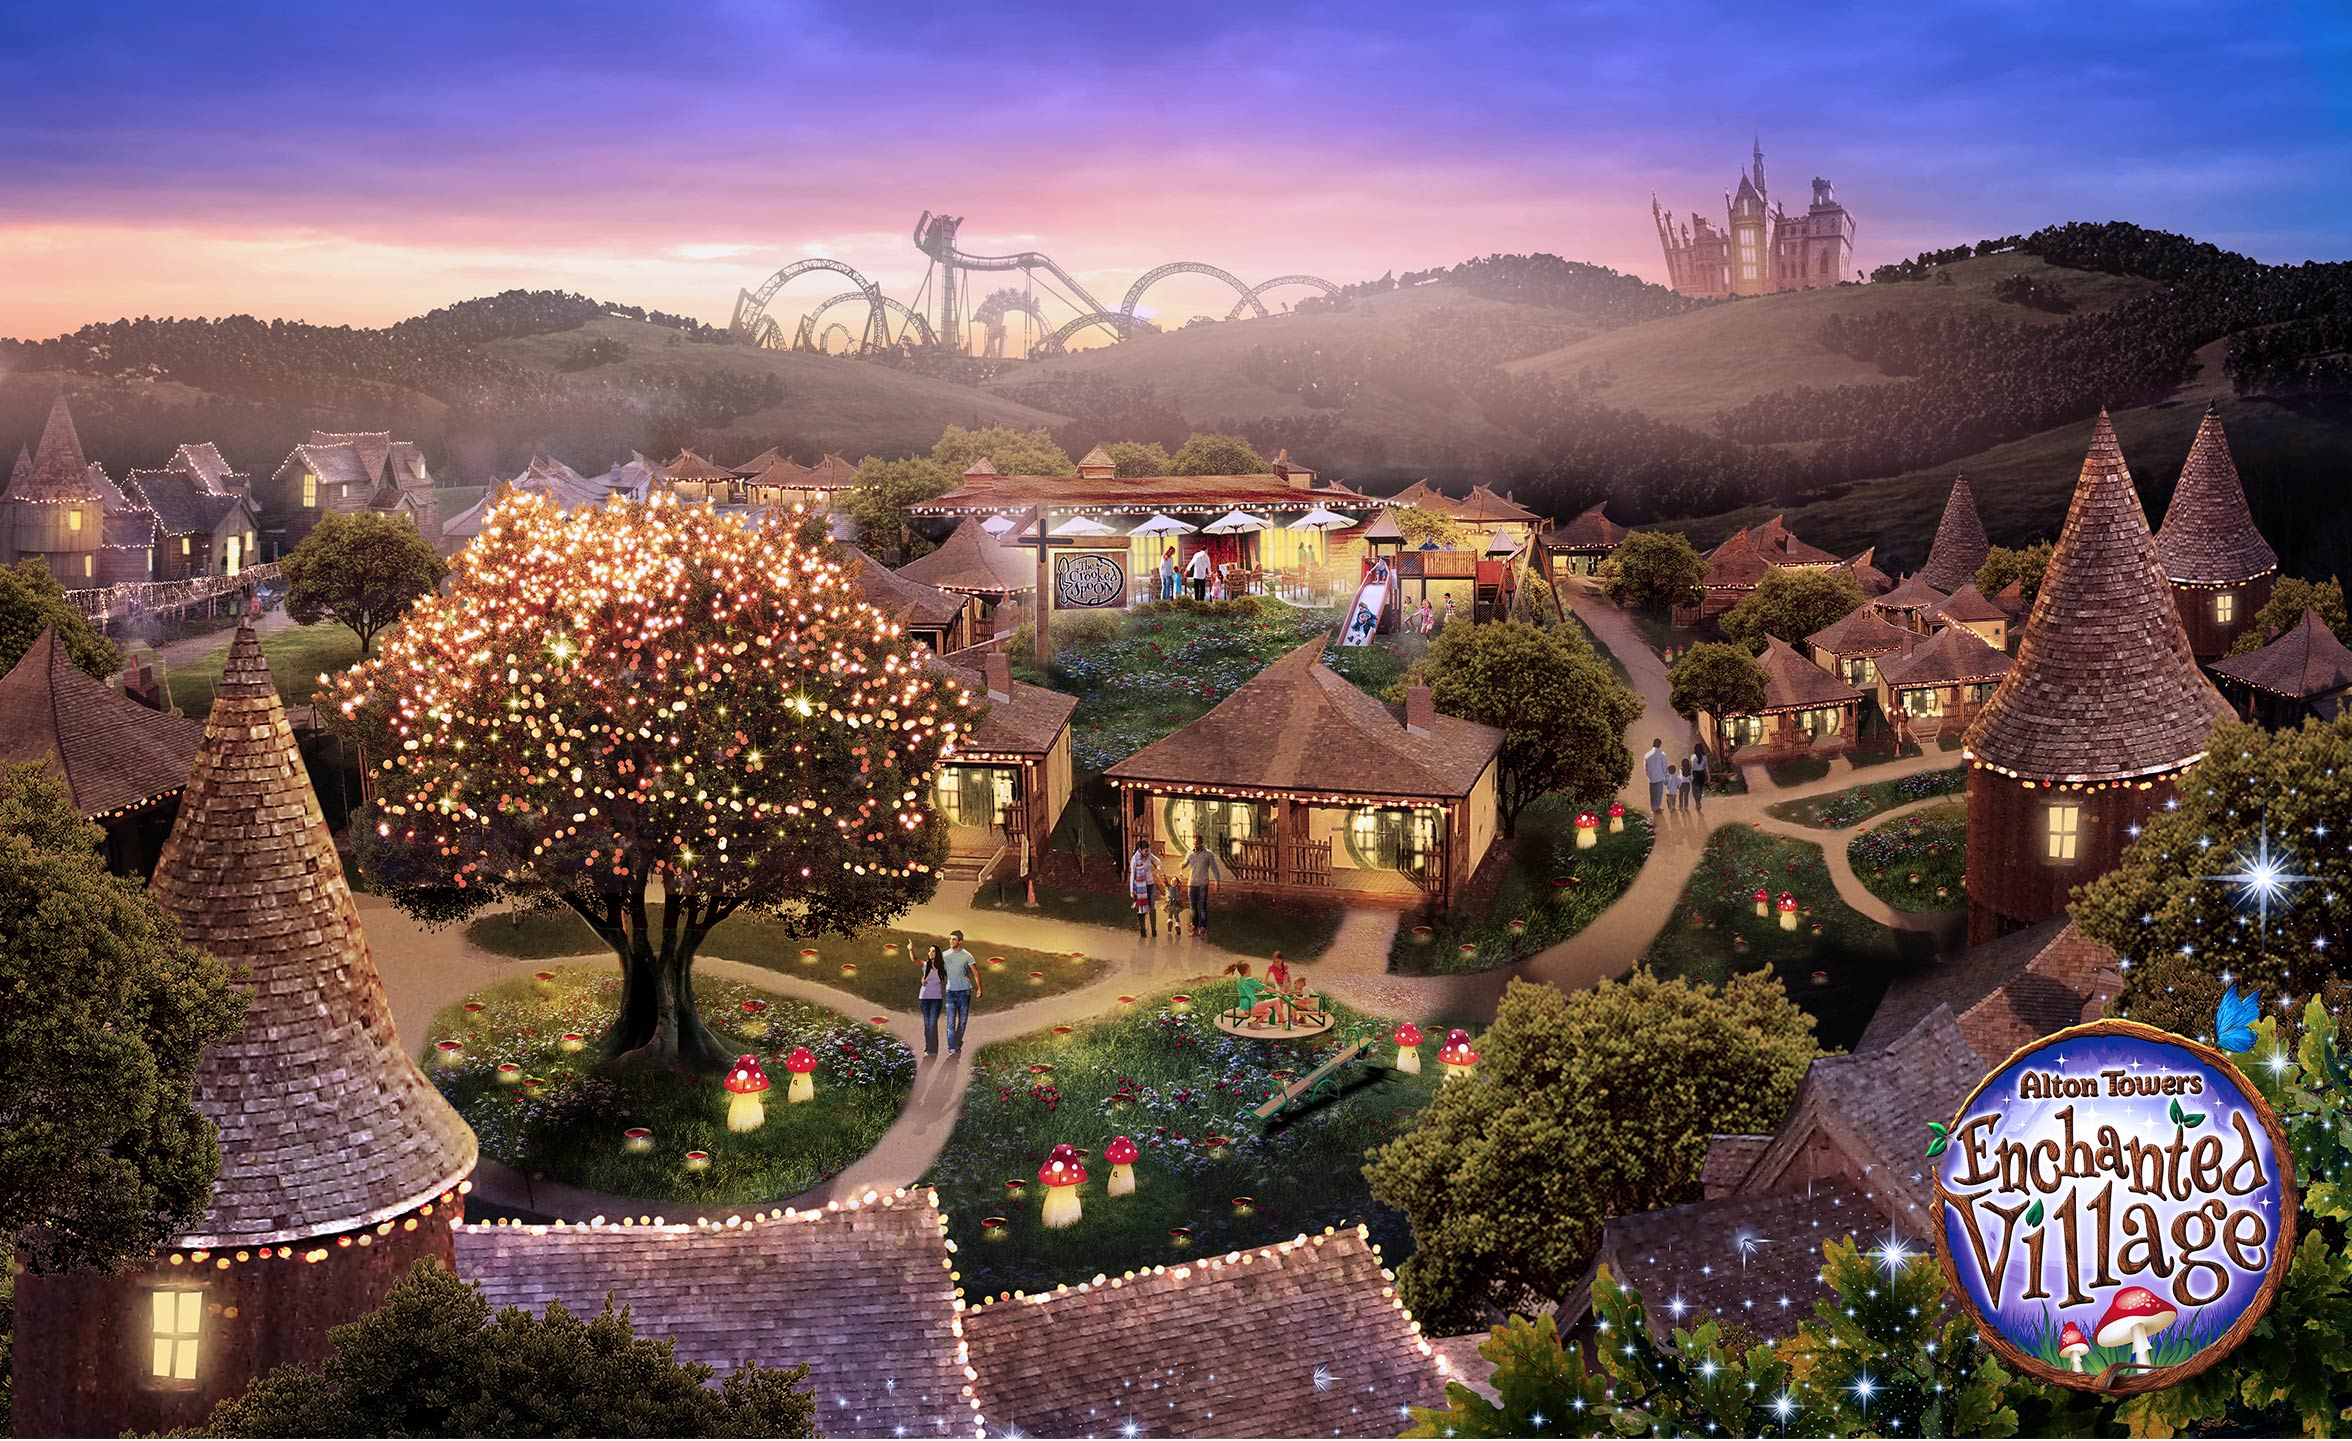 Enchanted_Village_vista